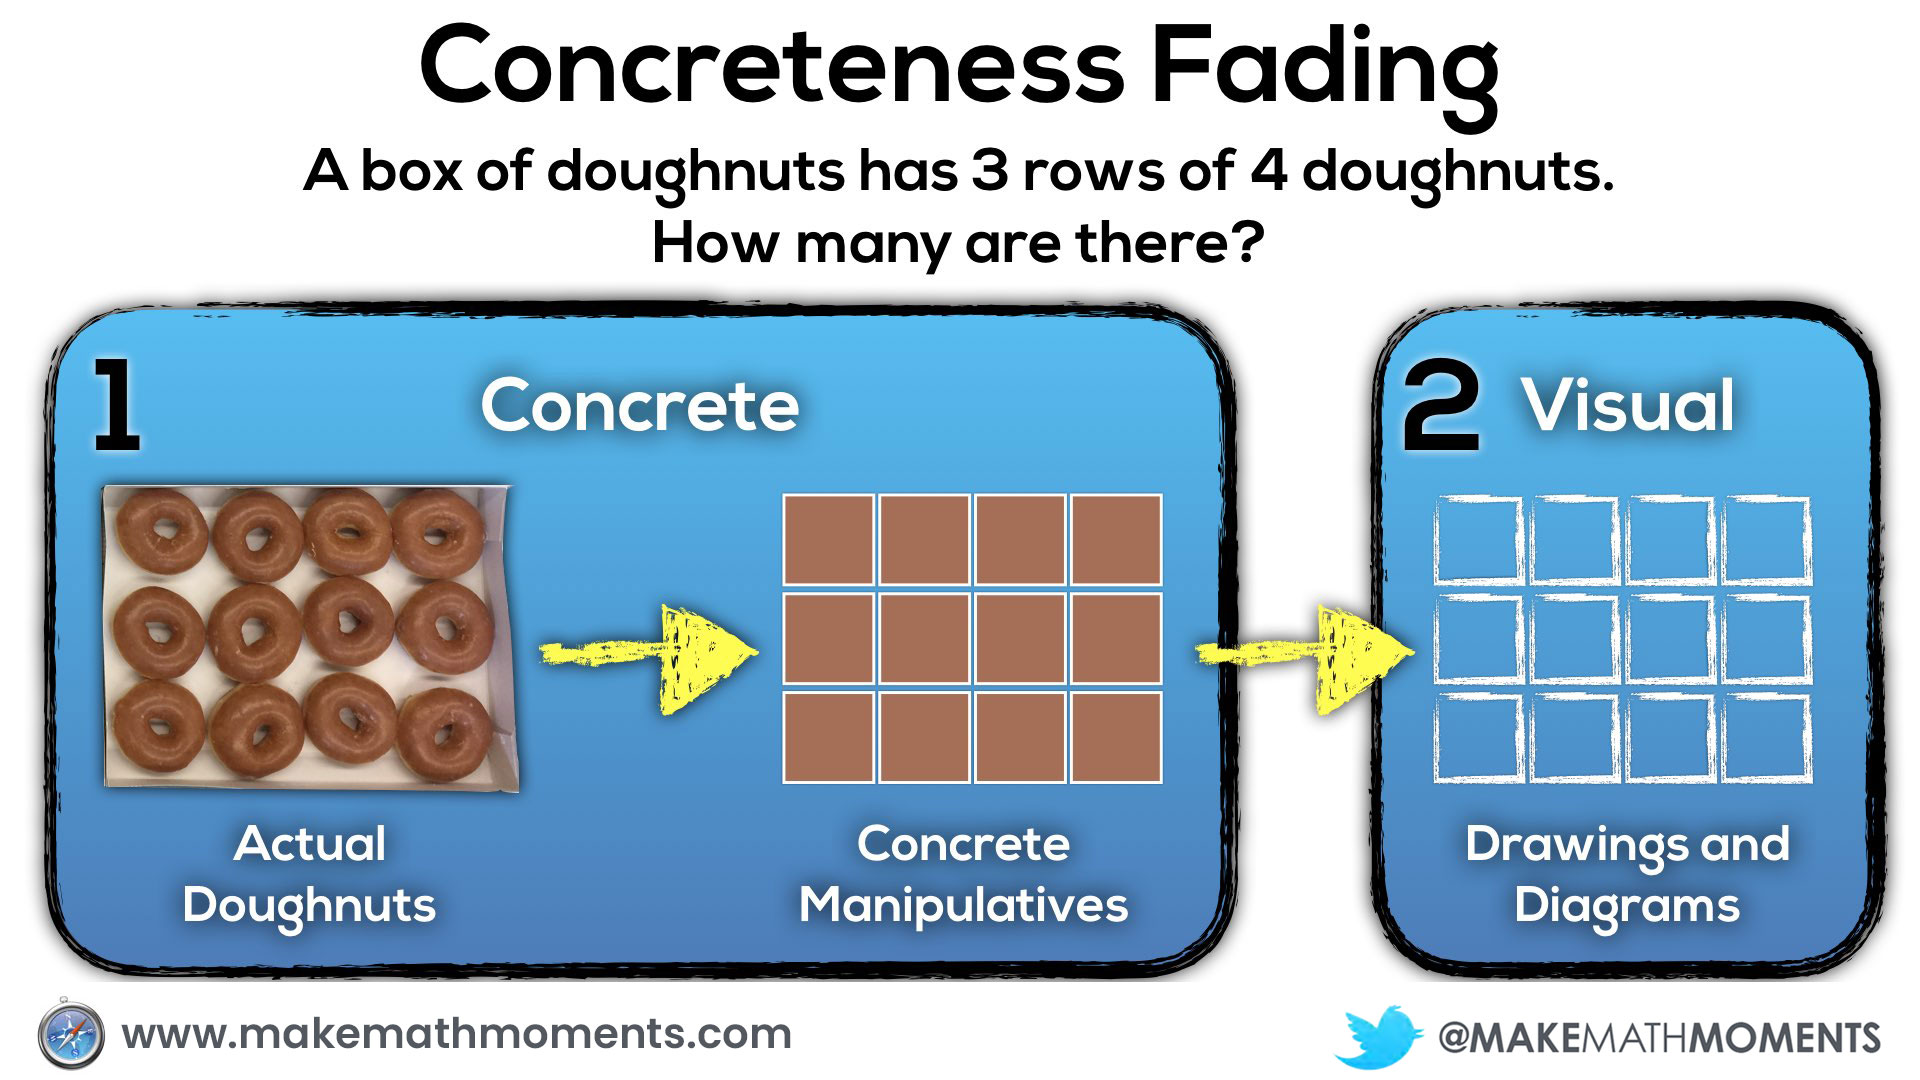 Concreteness Fading.010 first two stages of concreteness fading